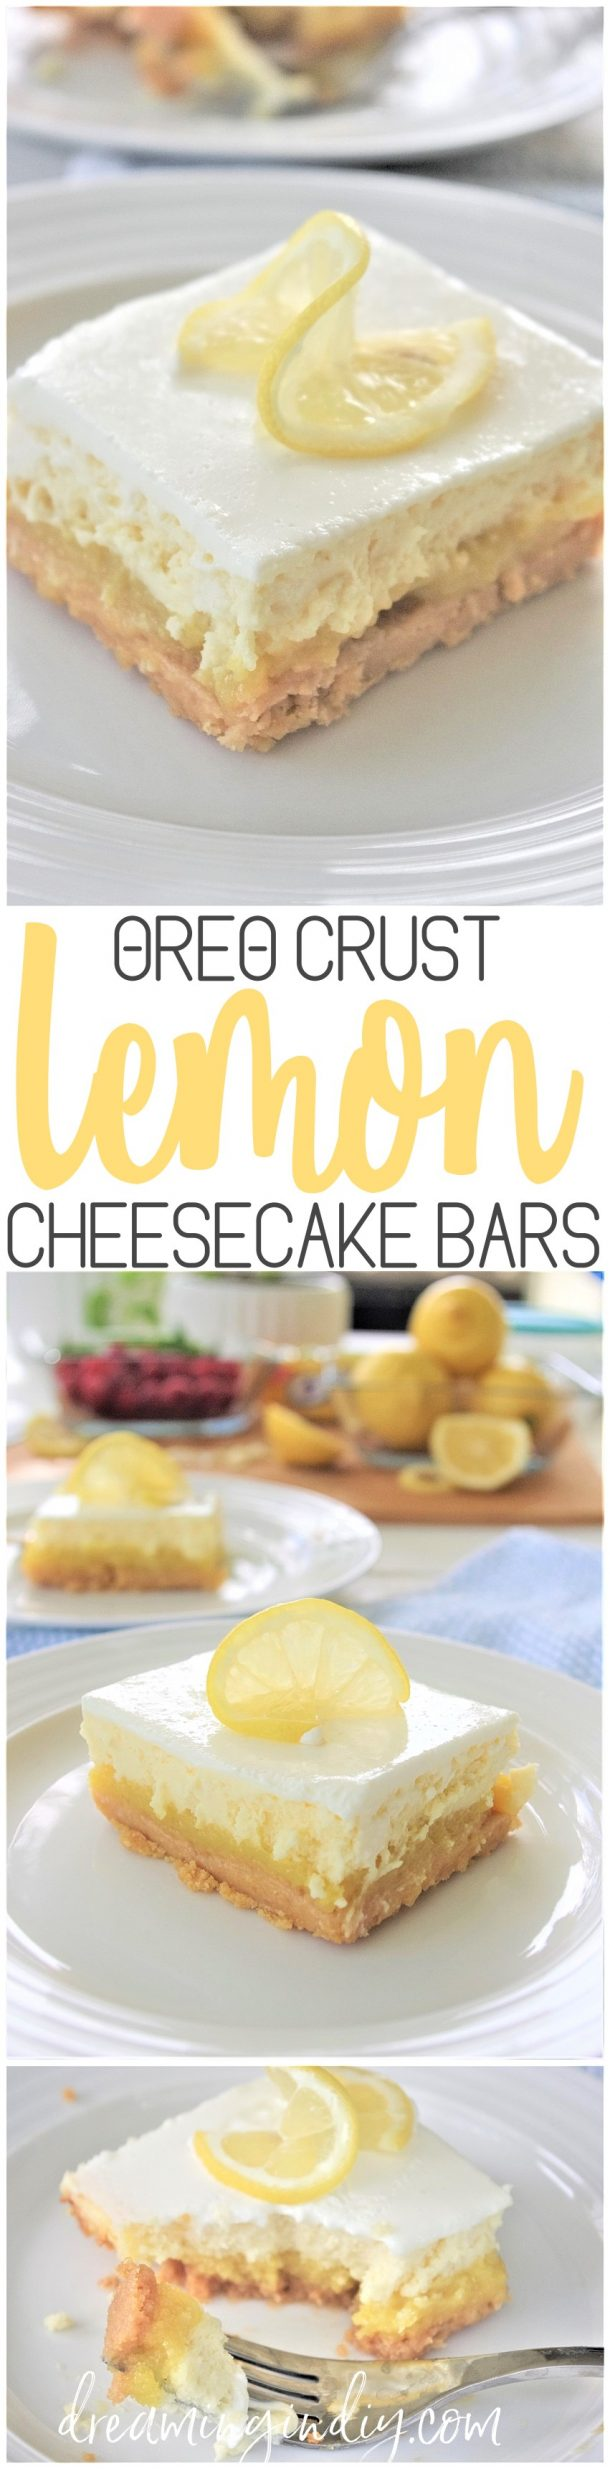 Oreo Crust Easy Sour Cream Lemon Layered Cheesecake Dessert Bars Recipe via Dreaming in DIY